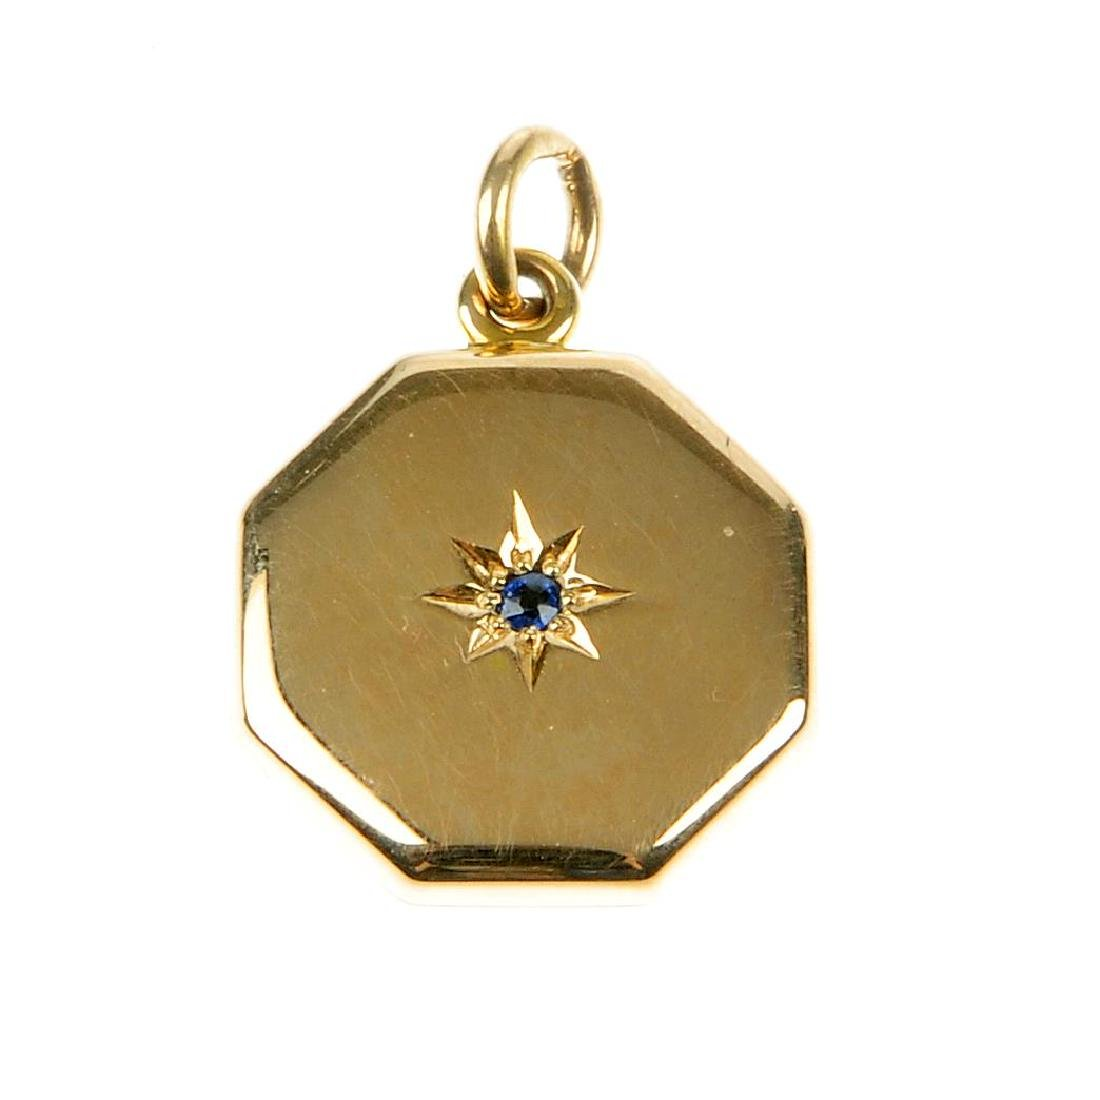 An early 20th century 15ct gold locket set with a